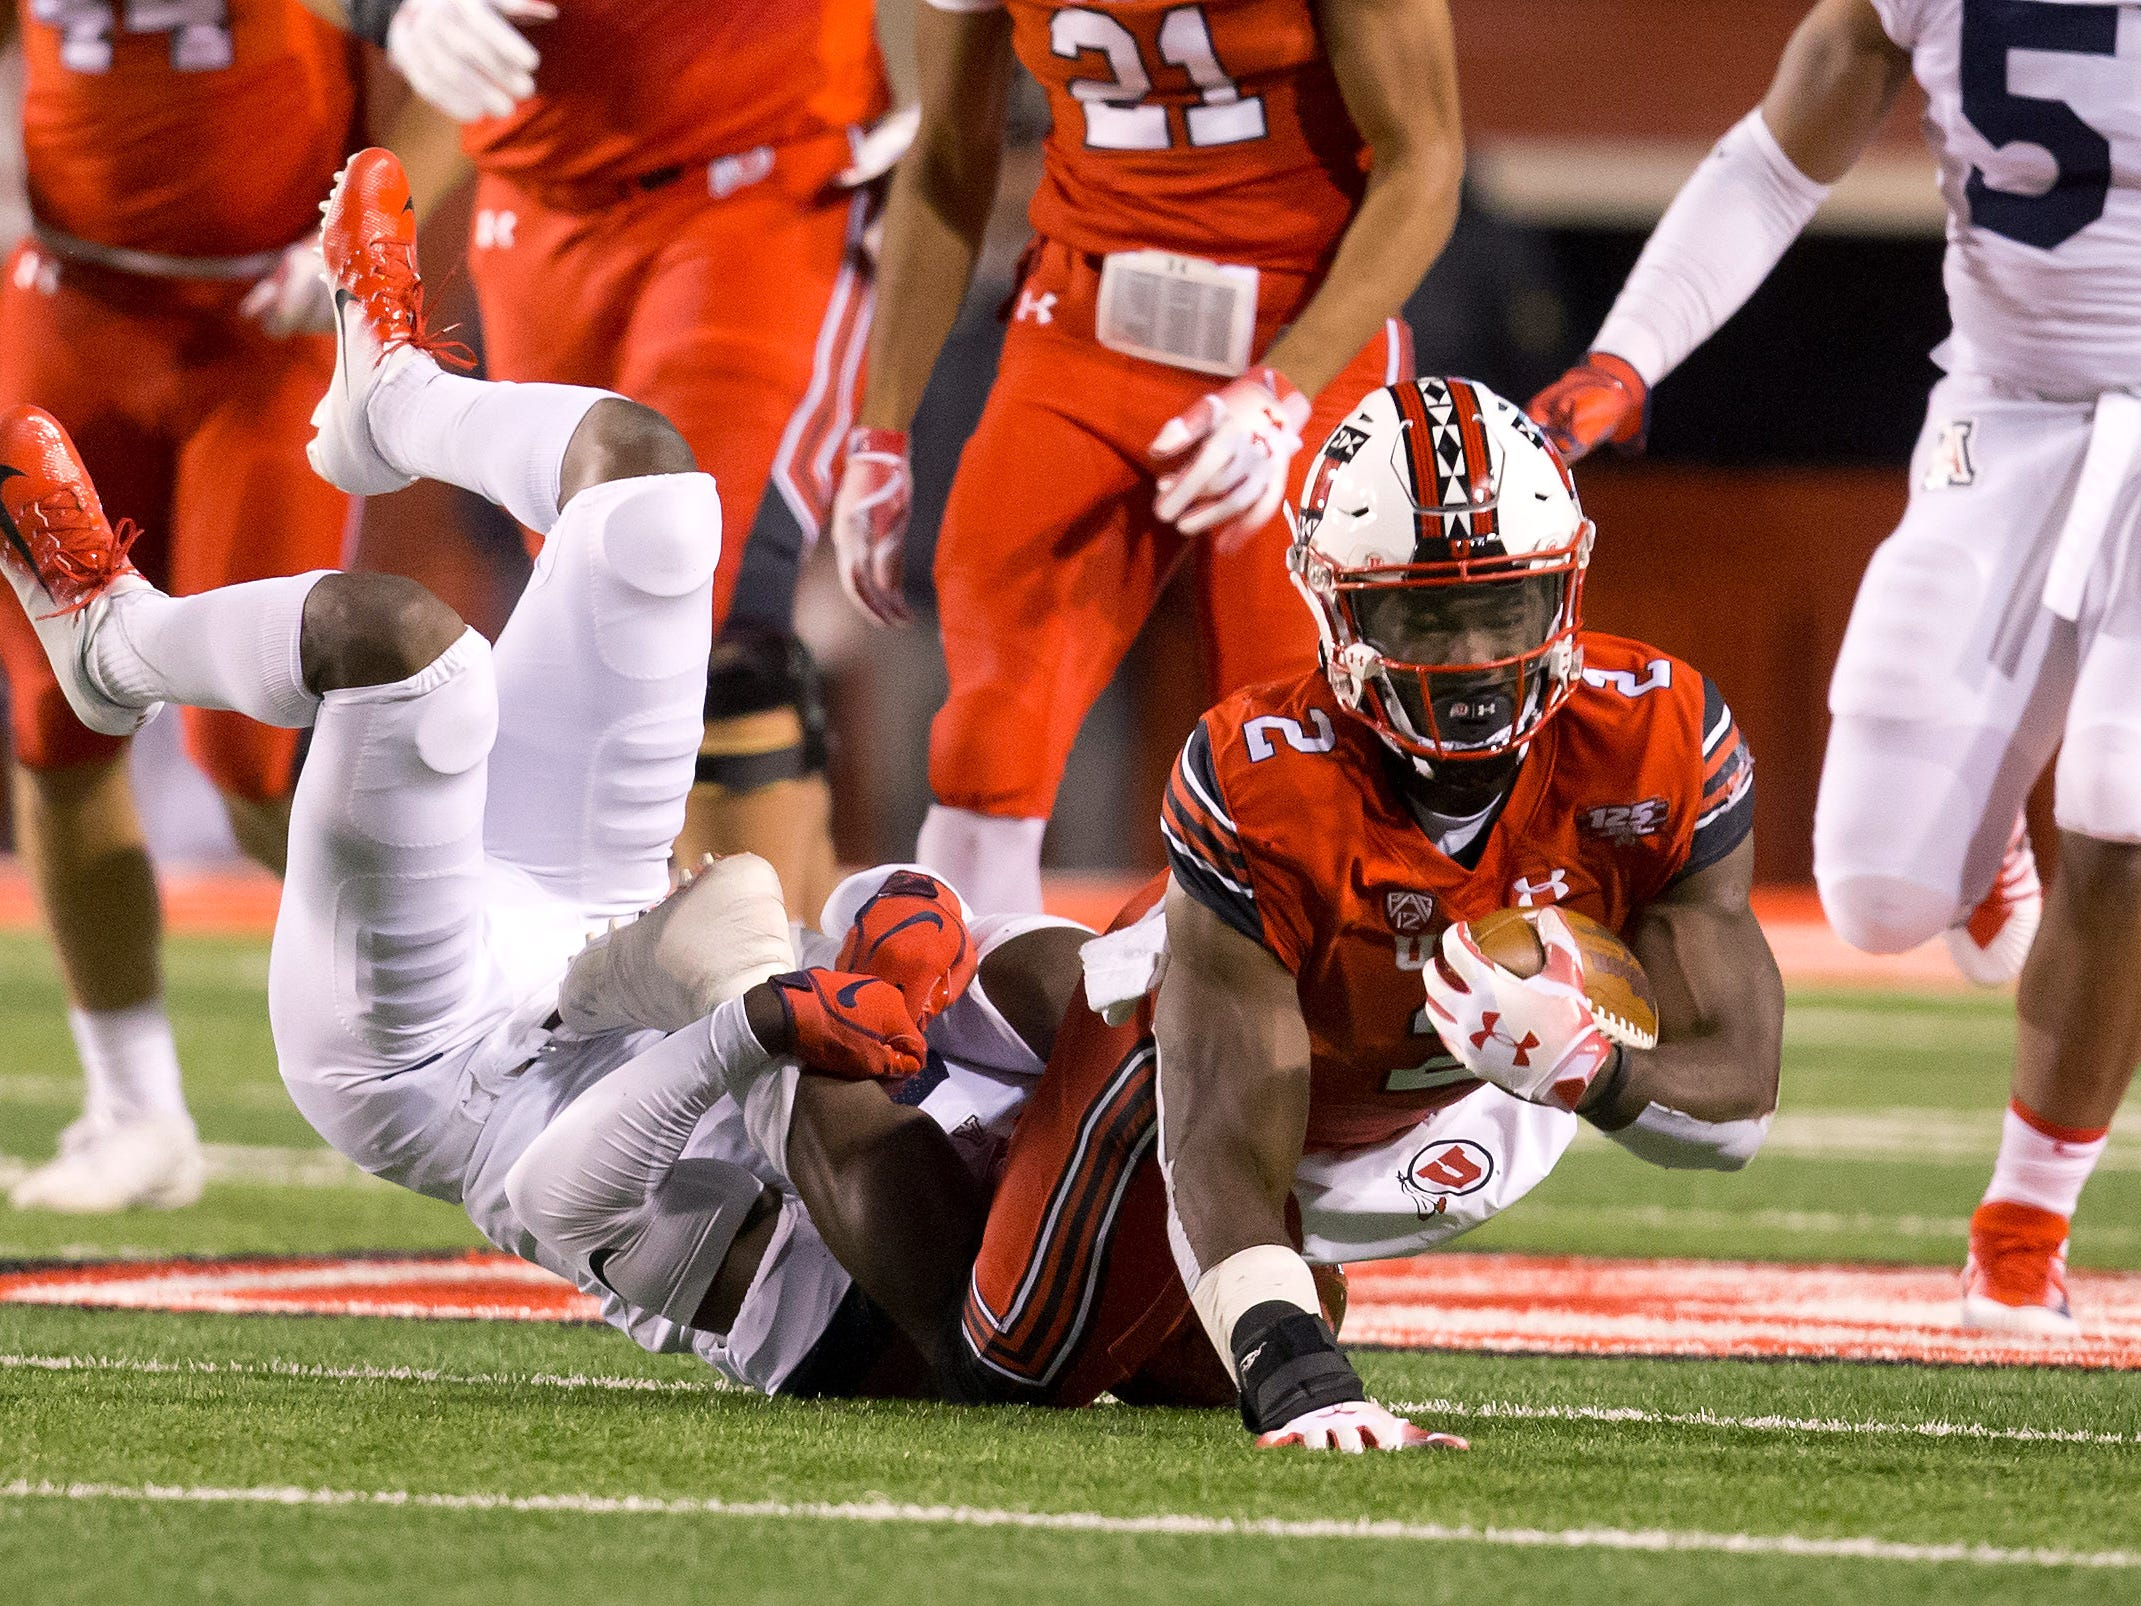 Oct 12, 2018; Salt Lake City, UT, USA; Utah Utes running back Zack Moss (2) is tackled by Arizona Wildcats safety Demetrius Flannigan-Fowles (6) during the first half at Rice-Eccles Stadium.